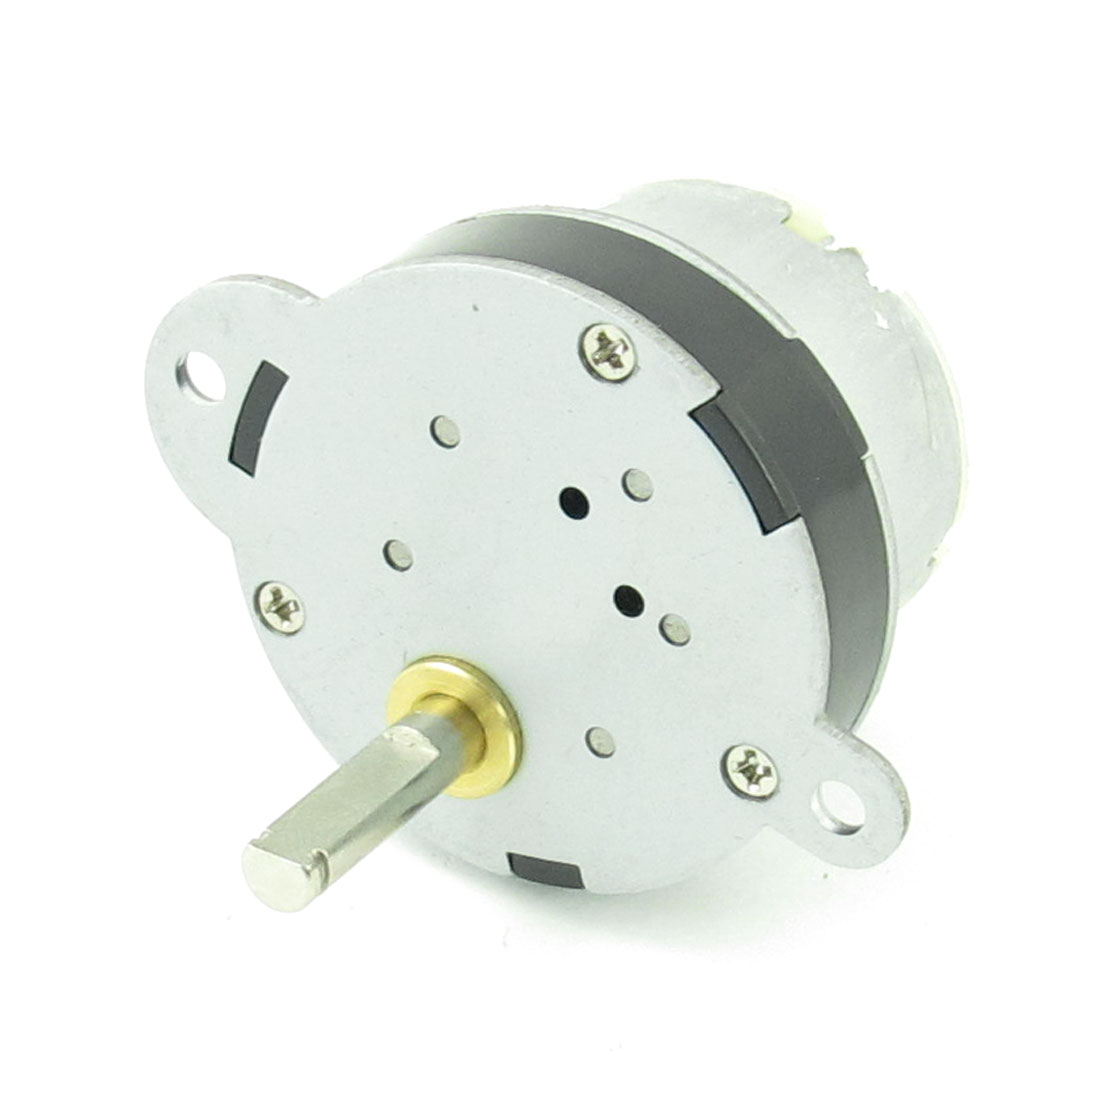 40mm Diameter Gearbox 3RPM 12V 0.06A DC Geared Motor